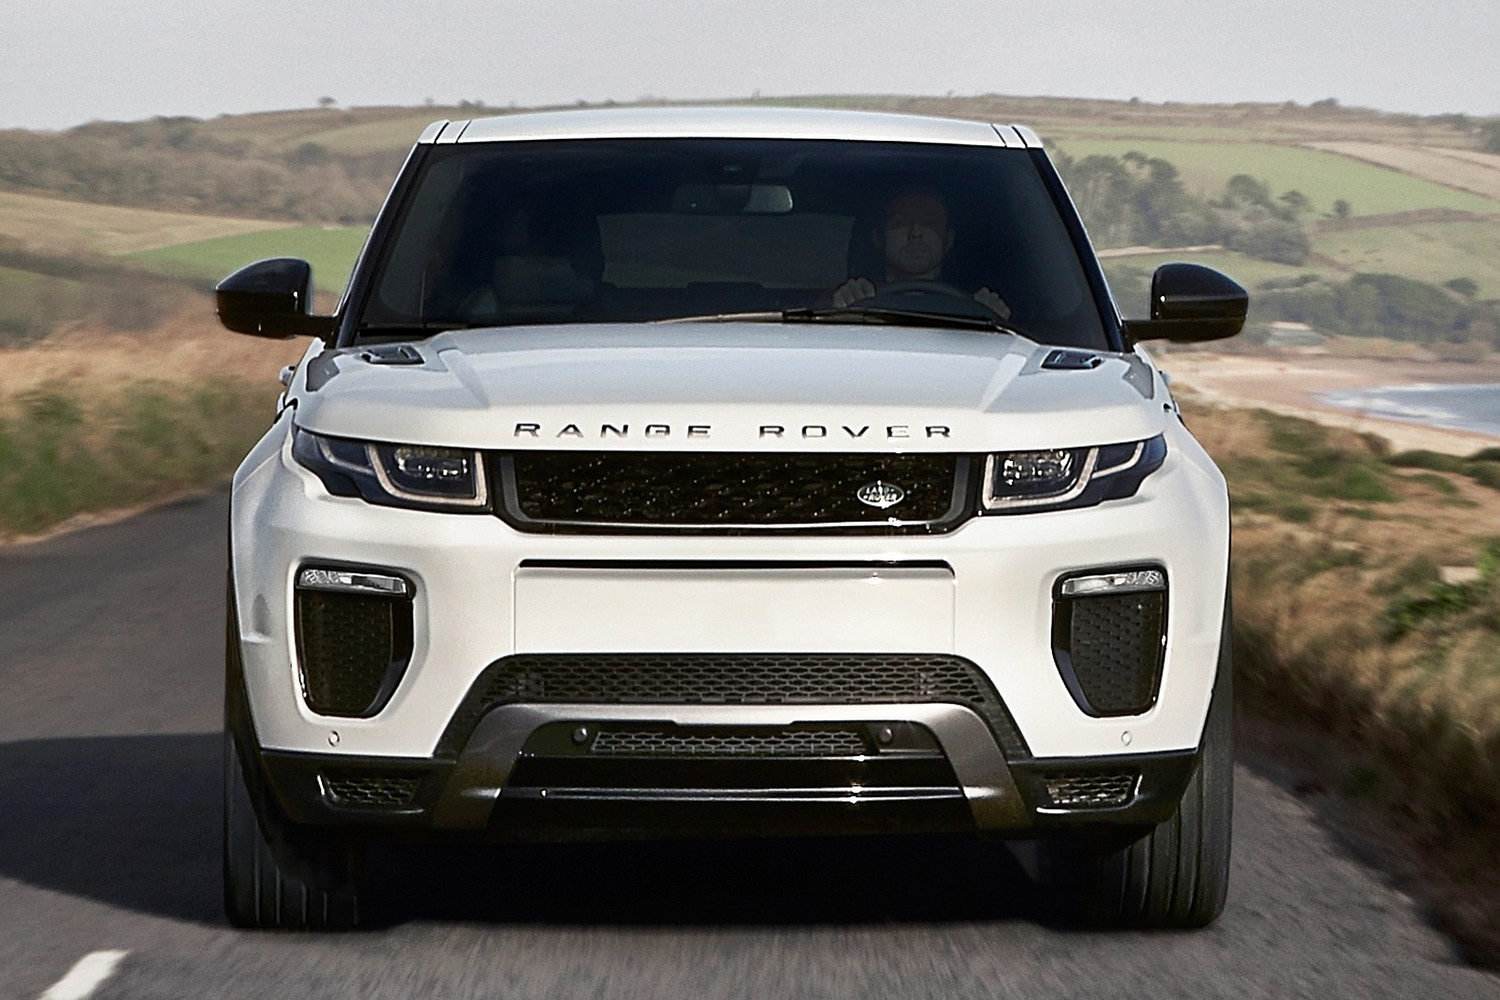 2016 Land Rover Range Rover Evoque HSE w/Dynamic Package 4dr SUV Exterior